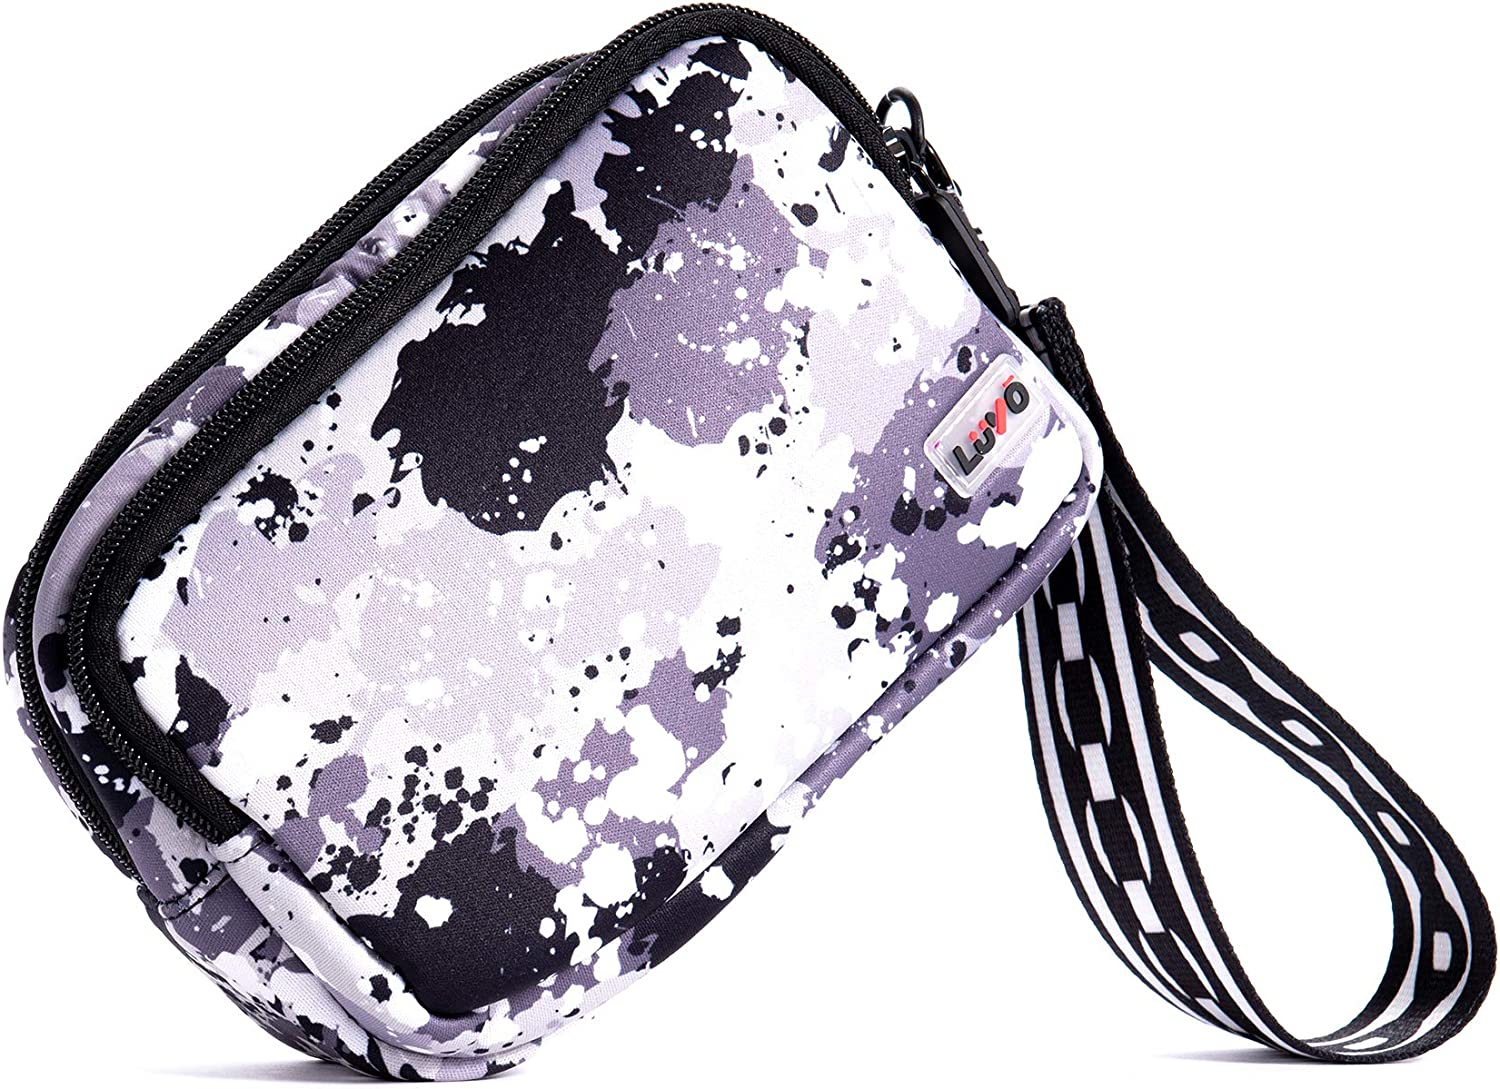 LuVo - Neoprene Mobile Wristlet Clutch Bags - Smartphone Holder Pouch